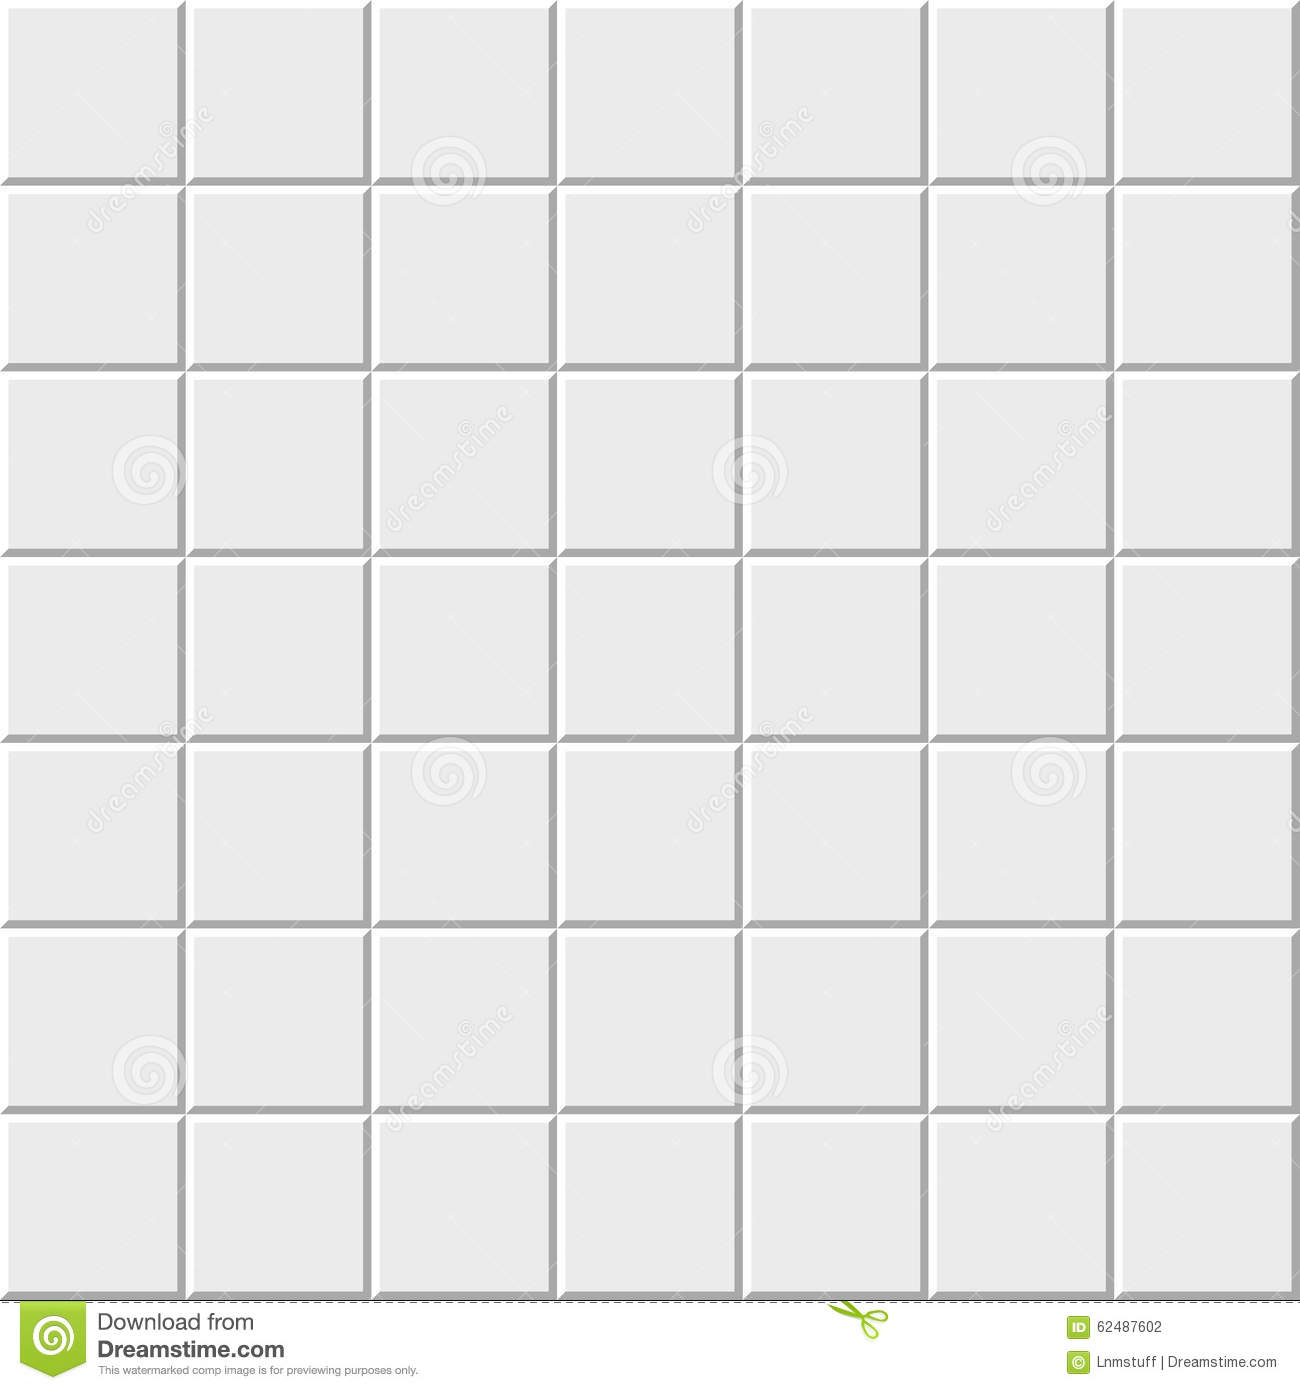 Simple white tiles pattern stock vector. Illustration of beautiful ...